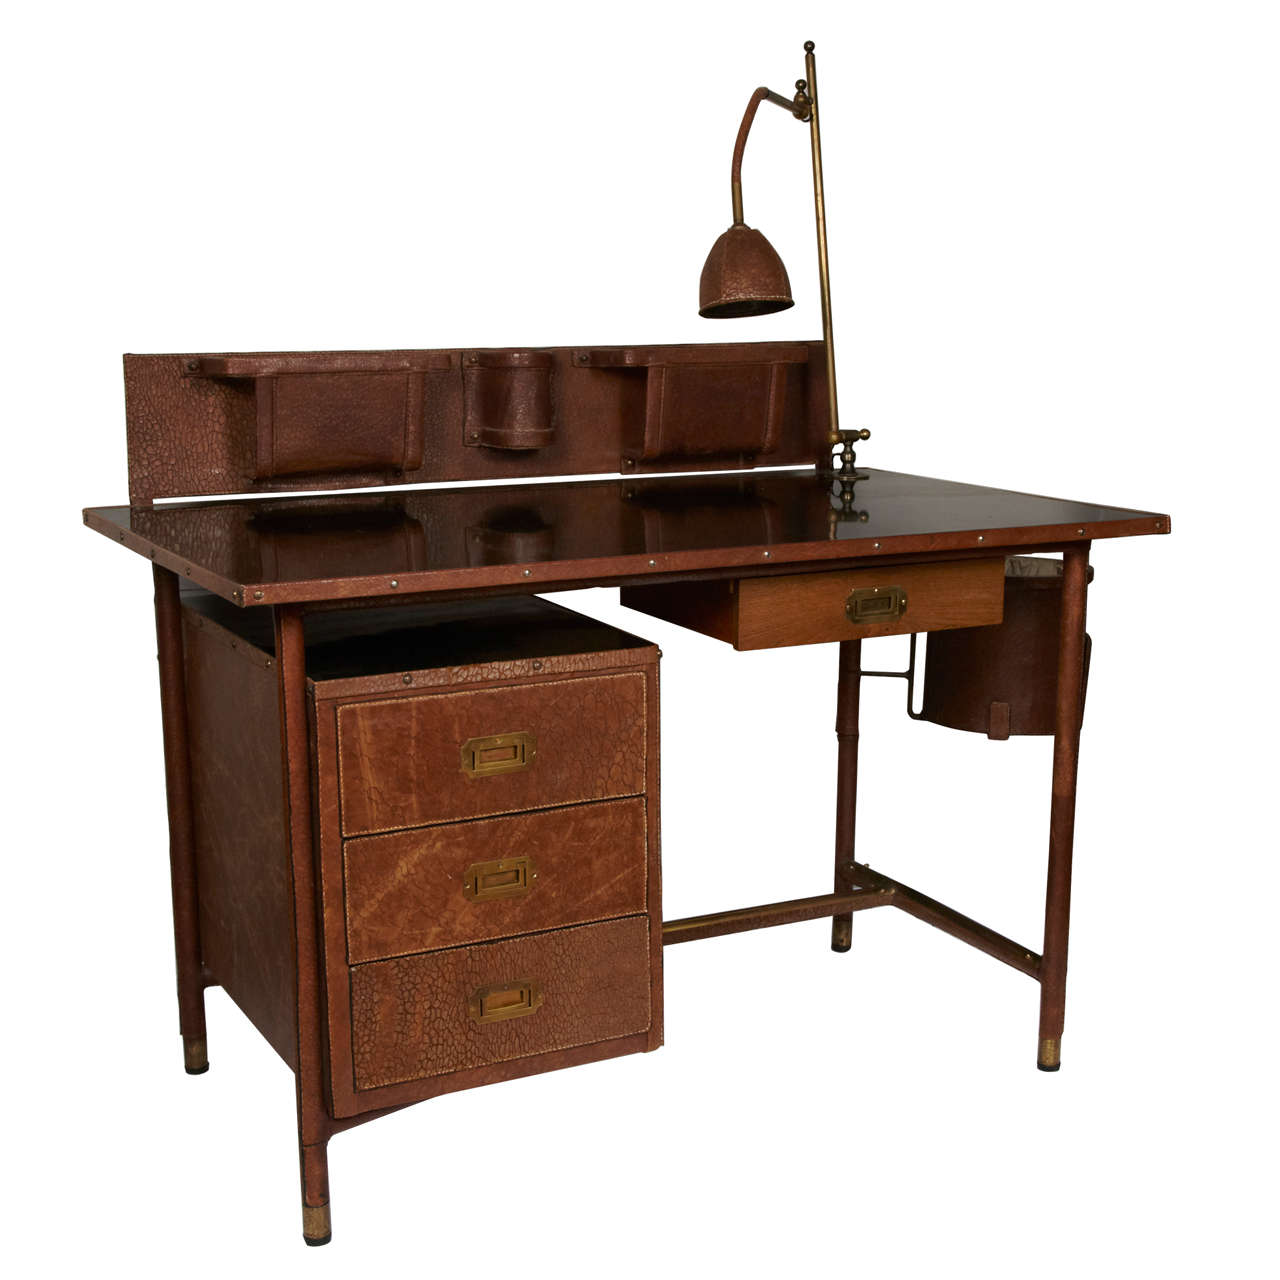 Fantastic 1950s Stitched Leather Desk by Jacques Adnet For Sale